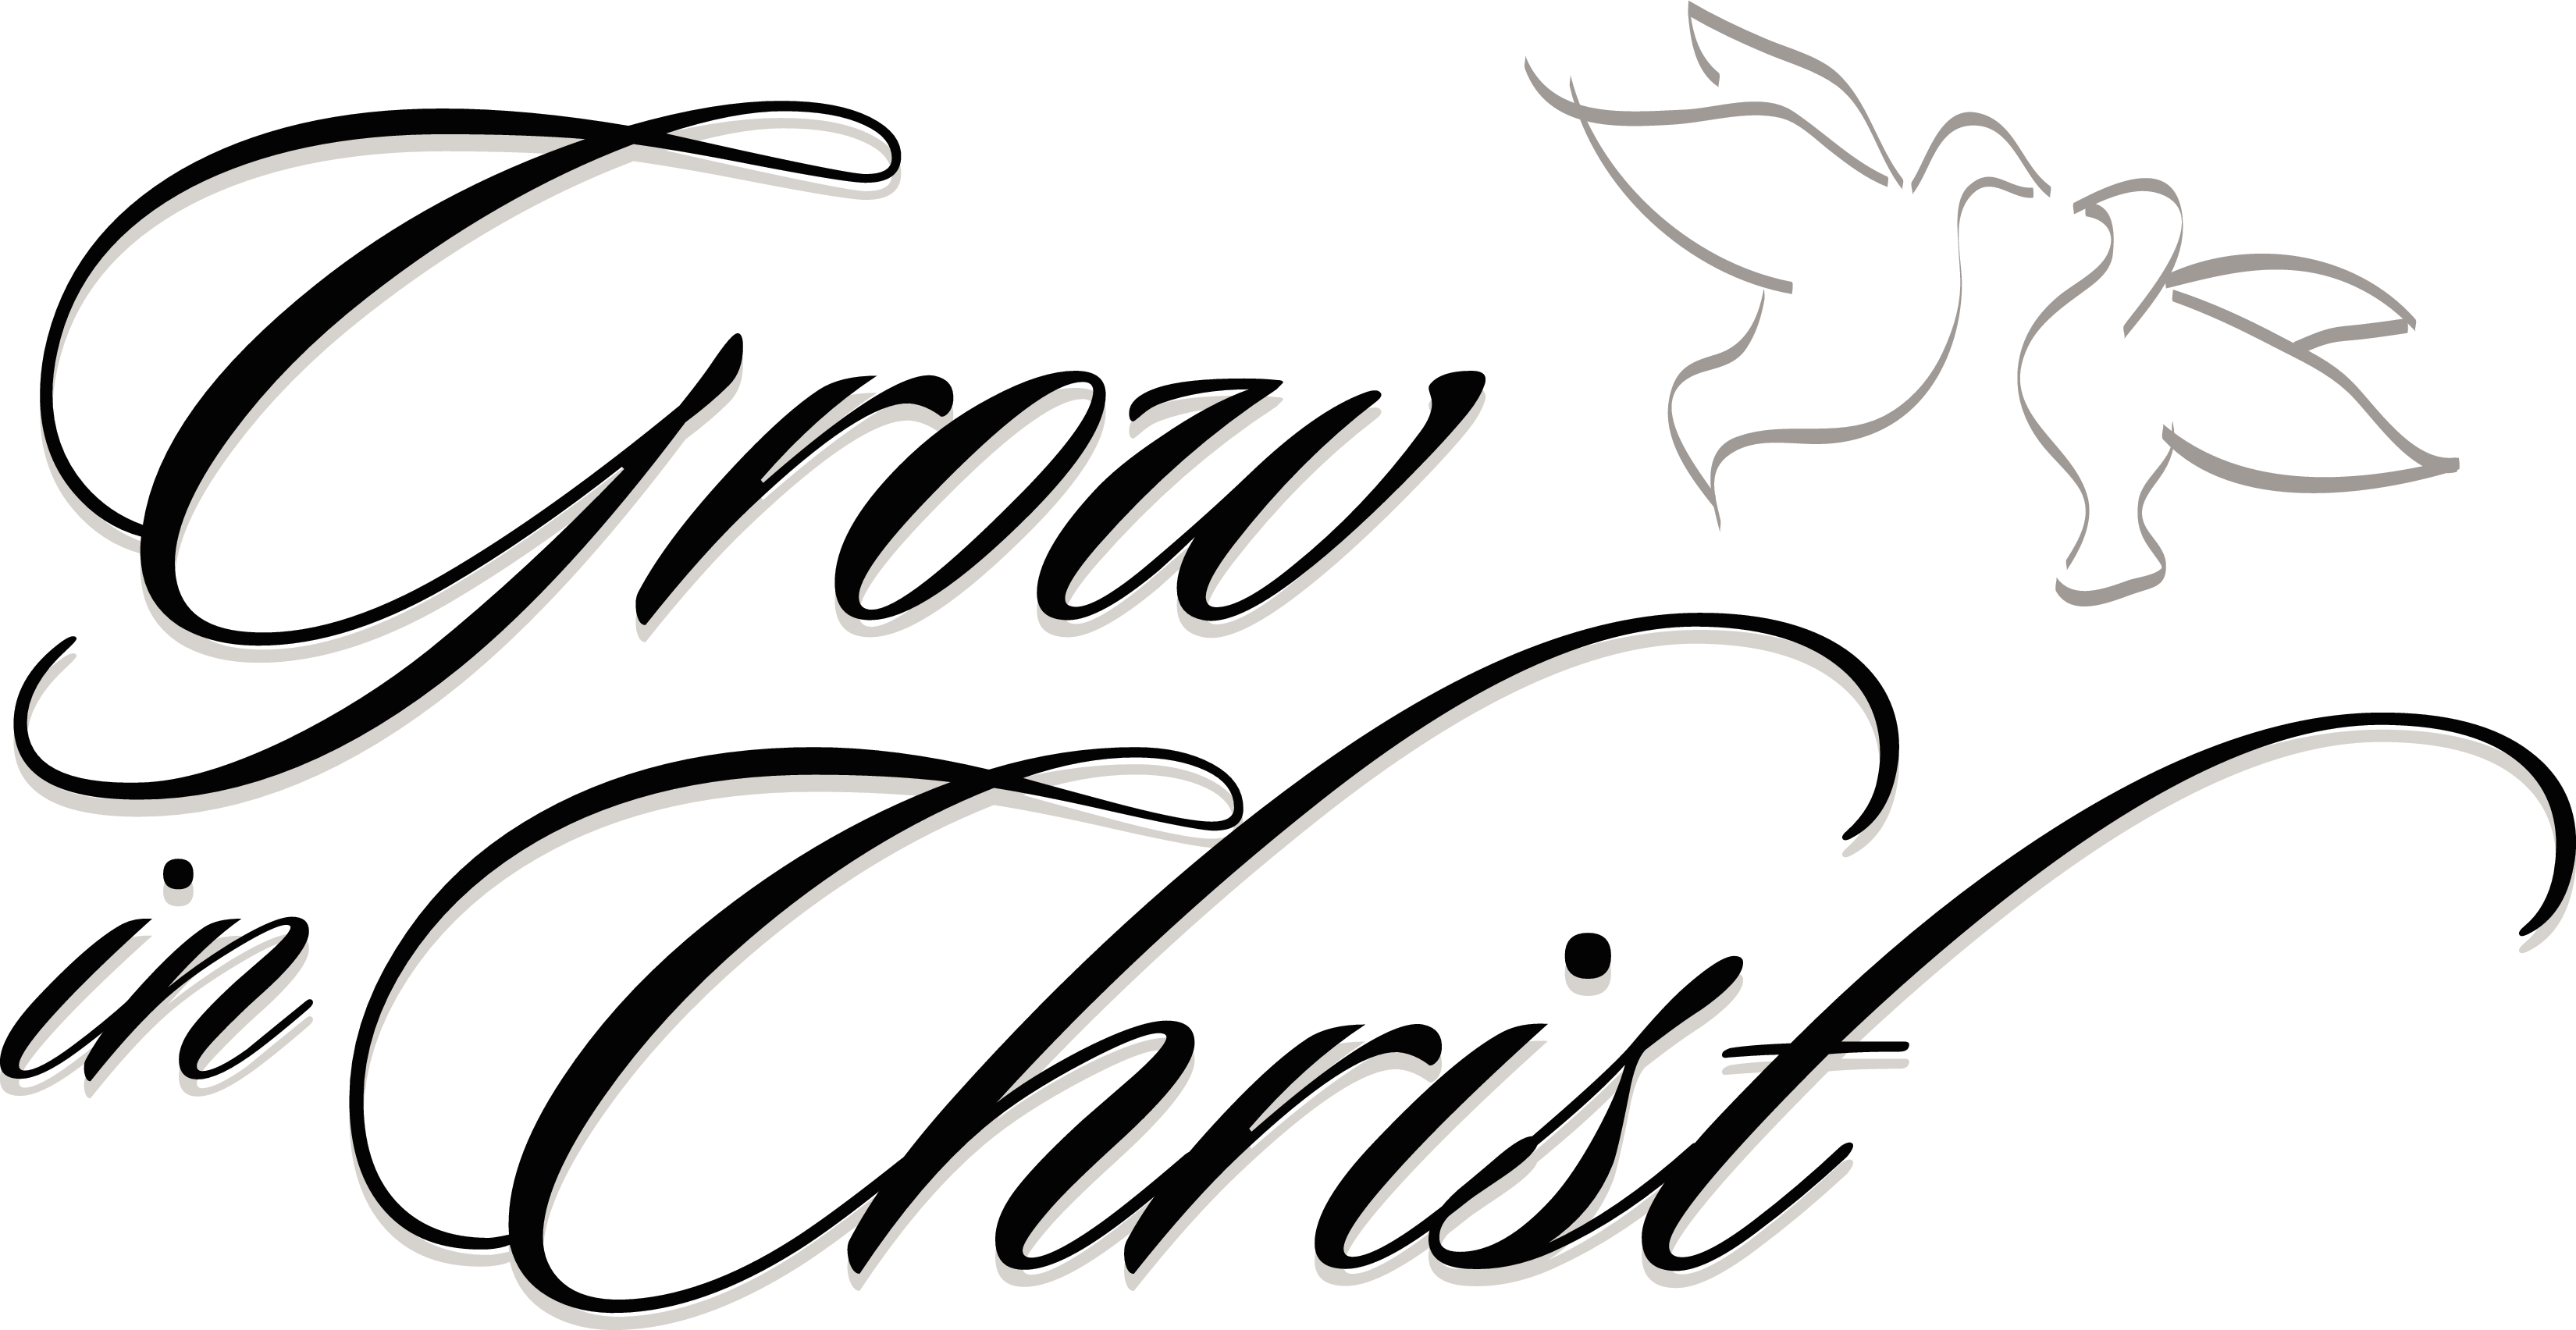 Free christian clipart and images. Biblical download best on